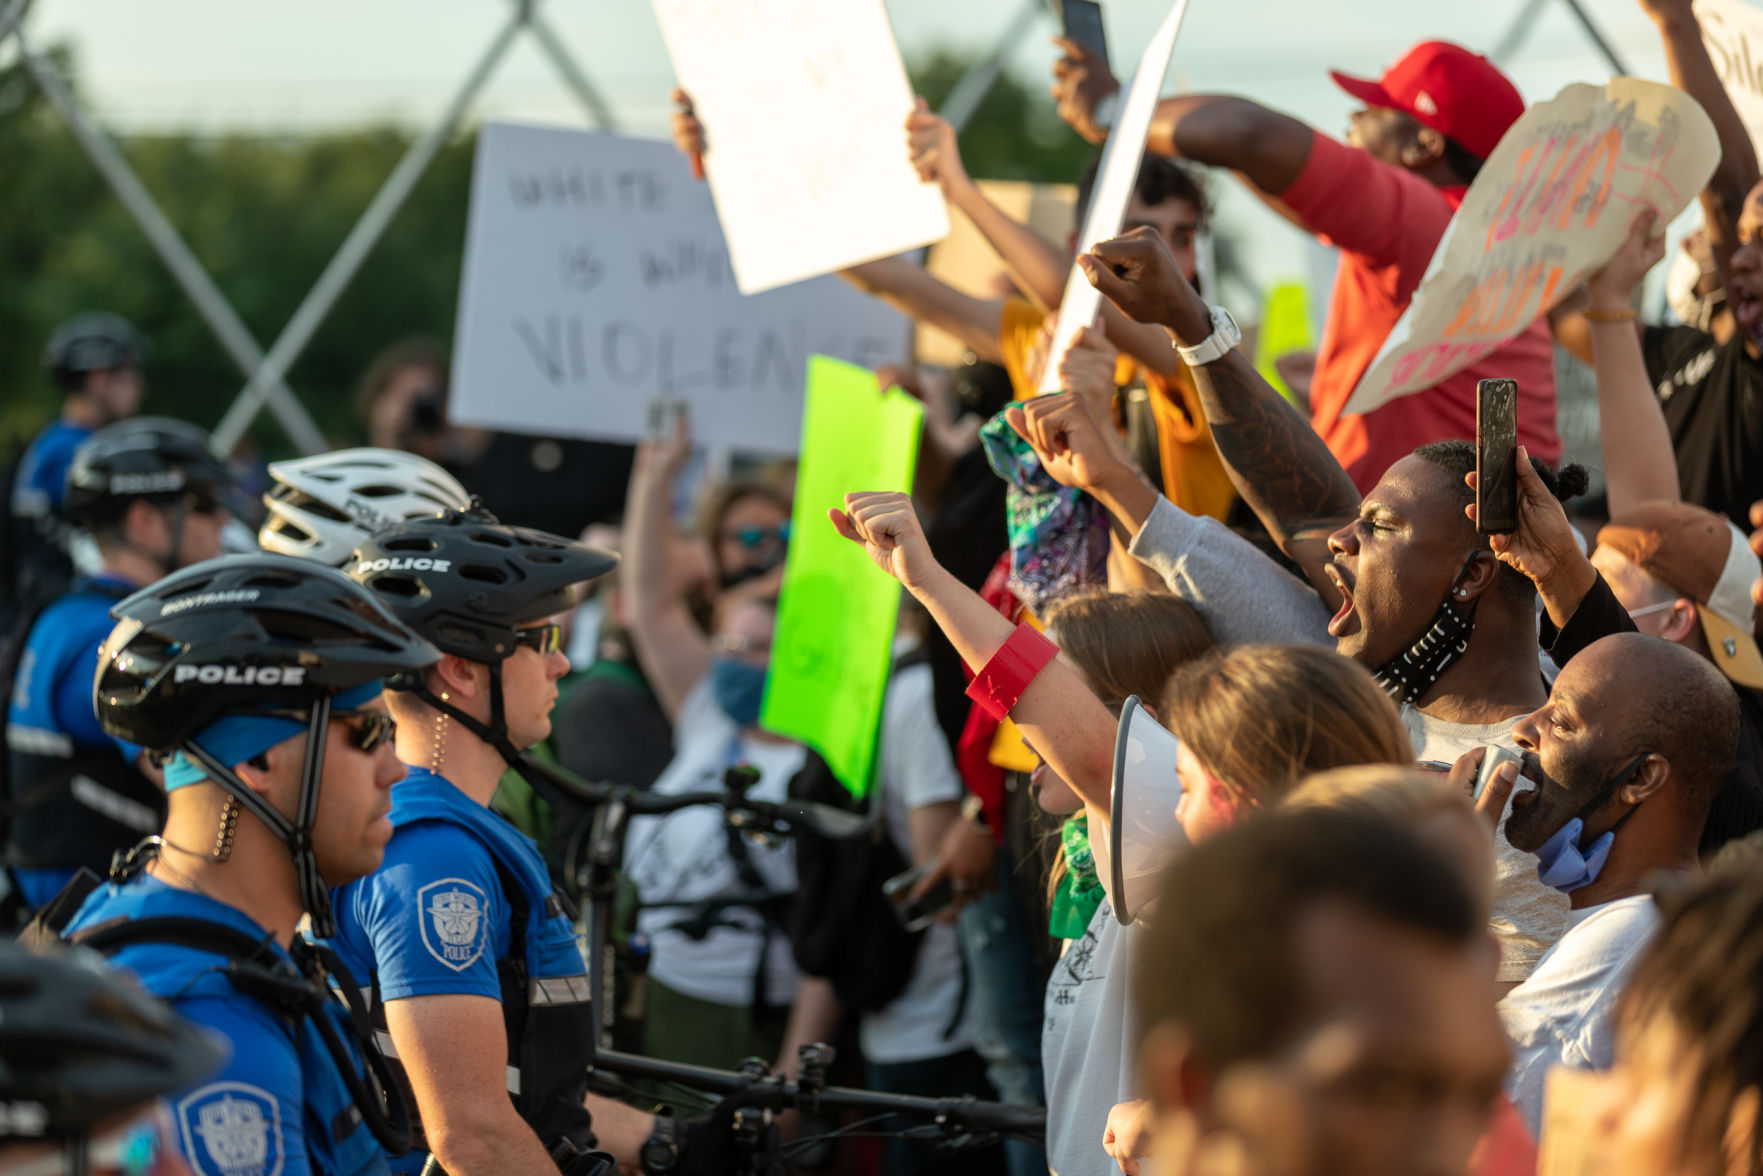 Photos: Demonstrators occupy West Seventh Street bridge during 3rd night of Fort Worth protests